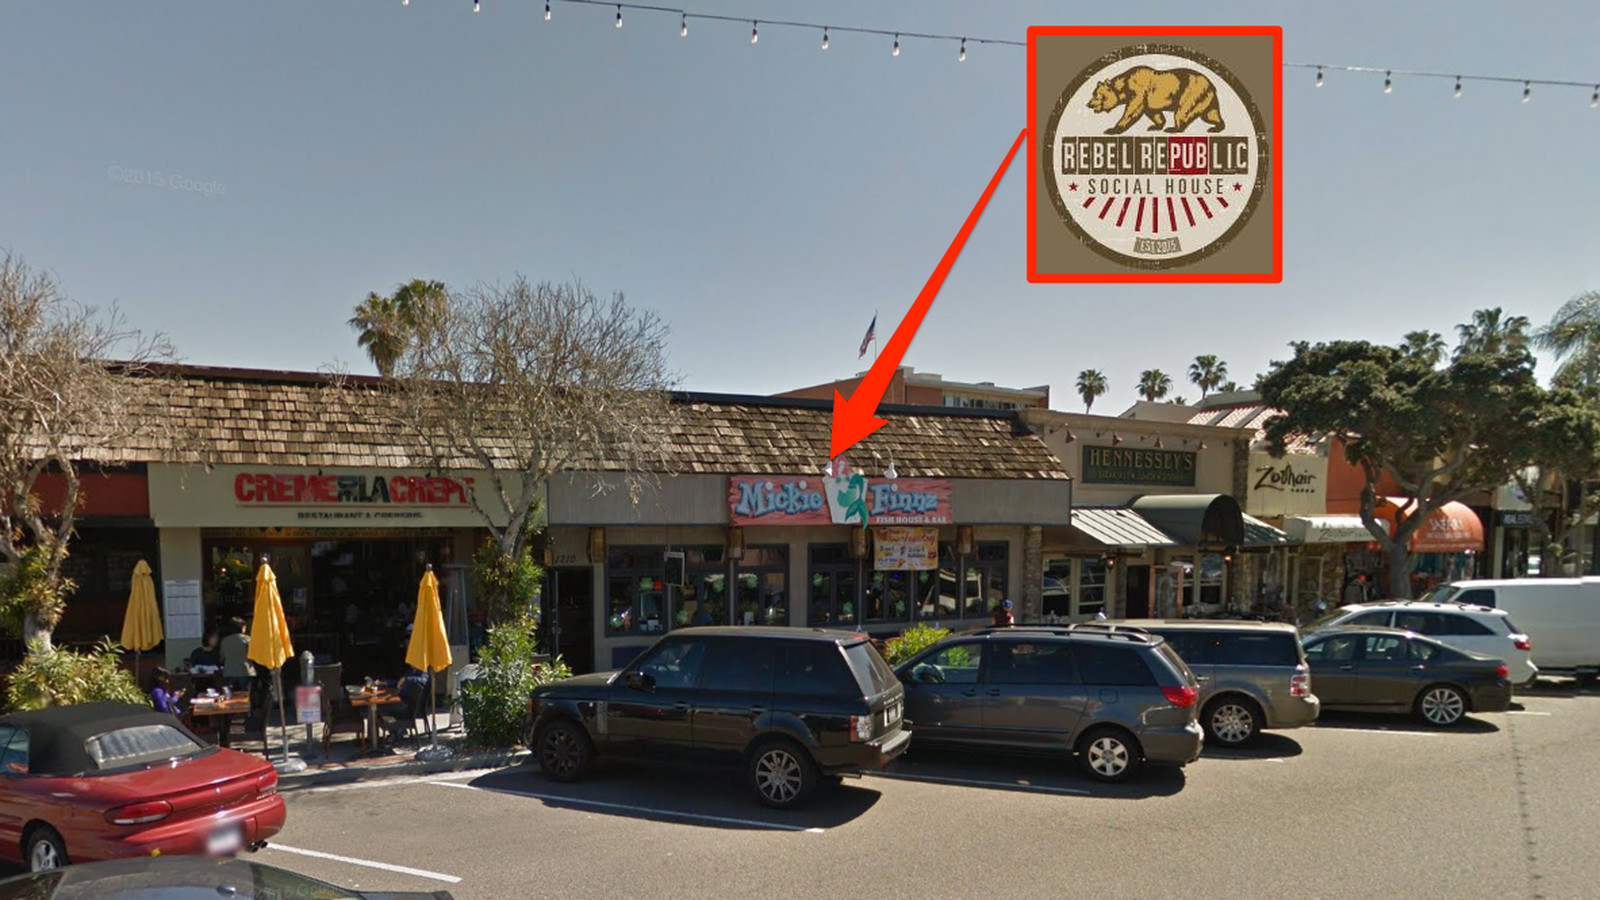 Craft Beer Loving Rebel Republic Flips Former Mickie Finnz In Redondo Beach